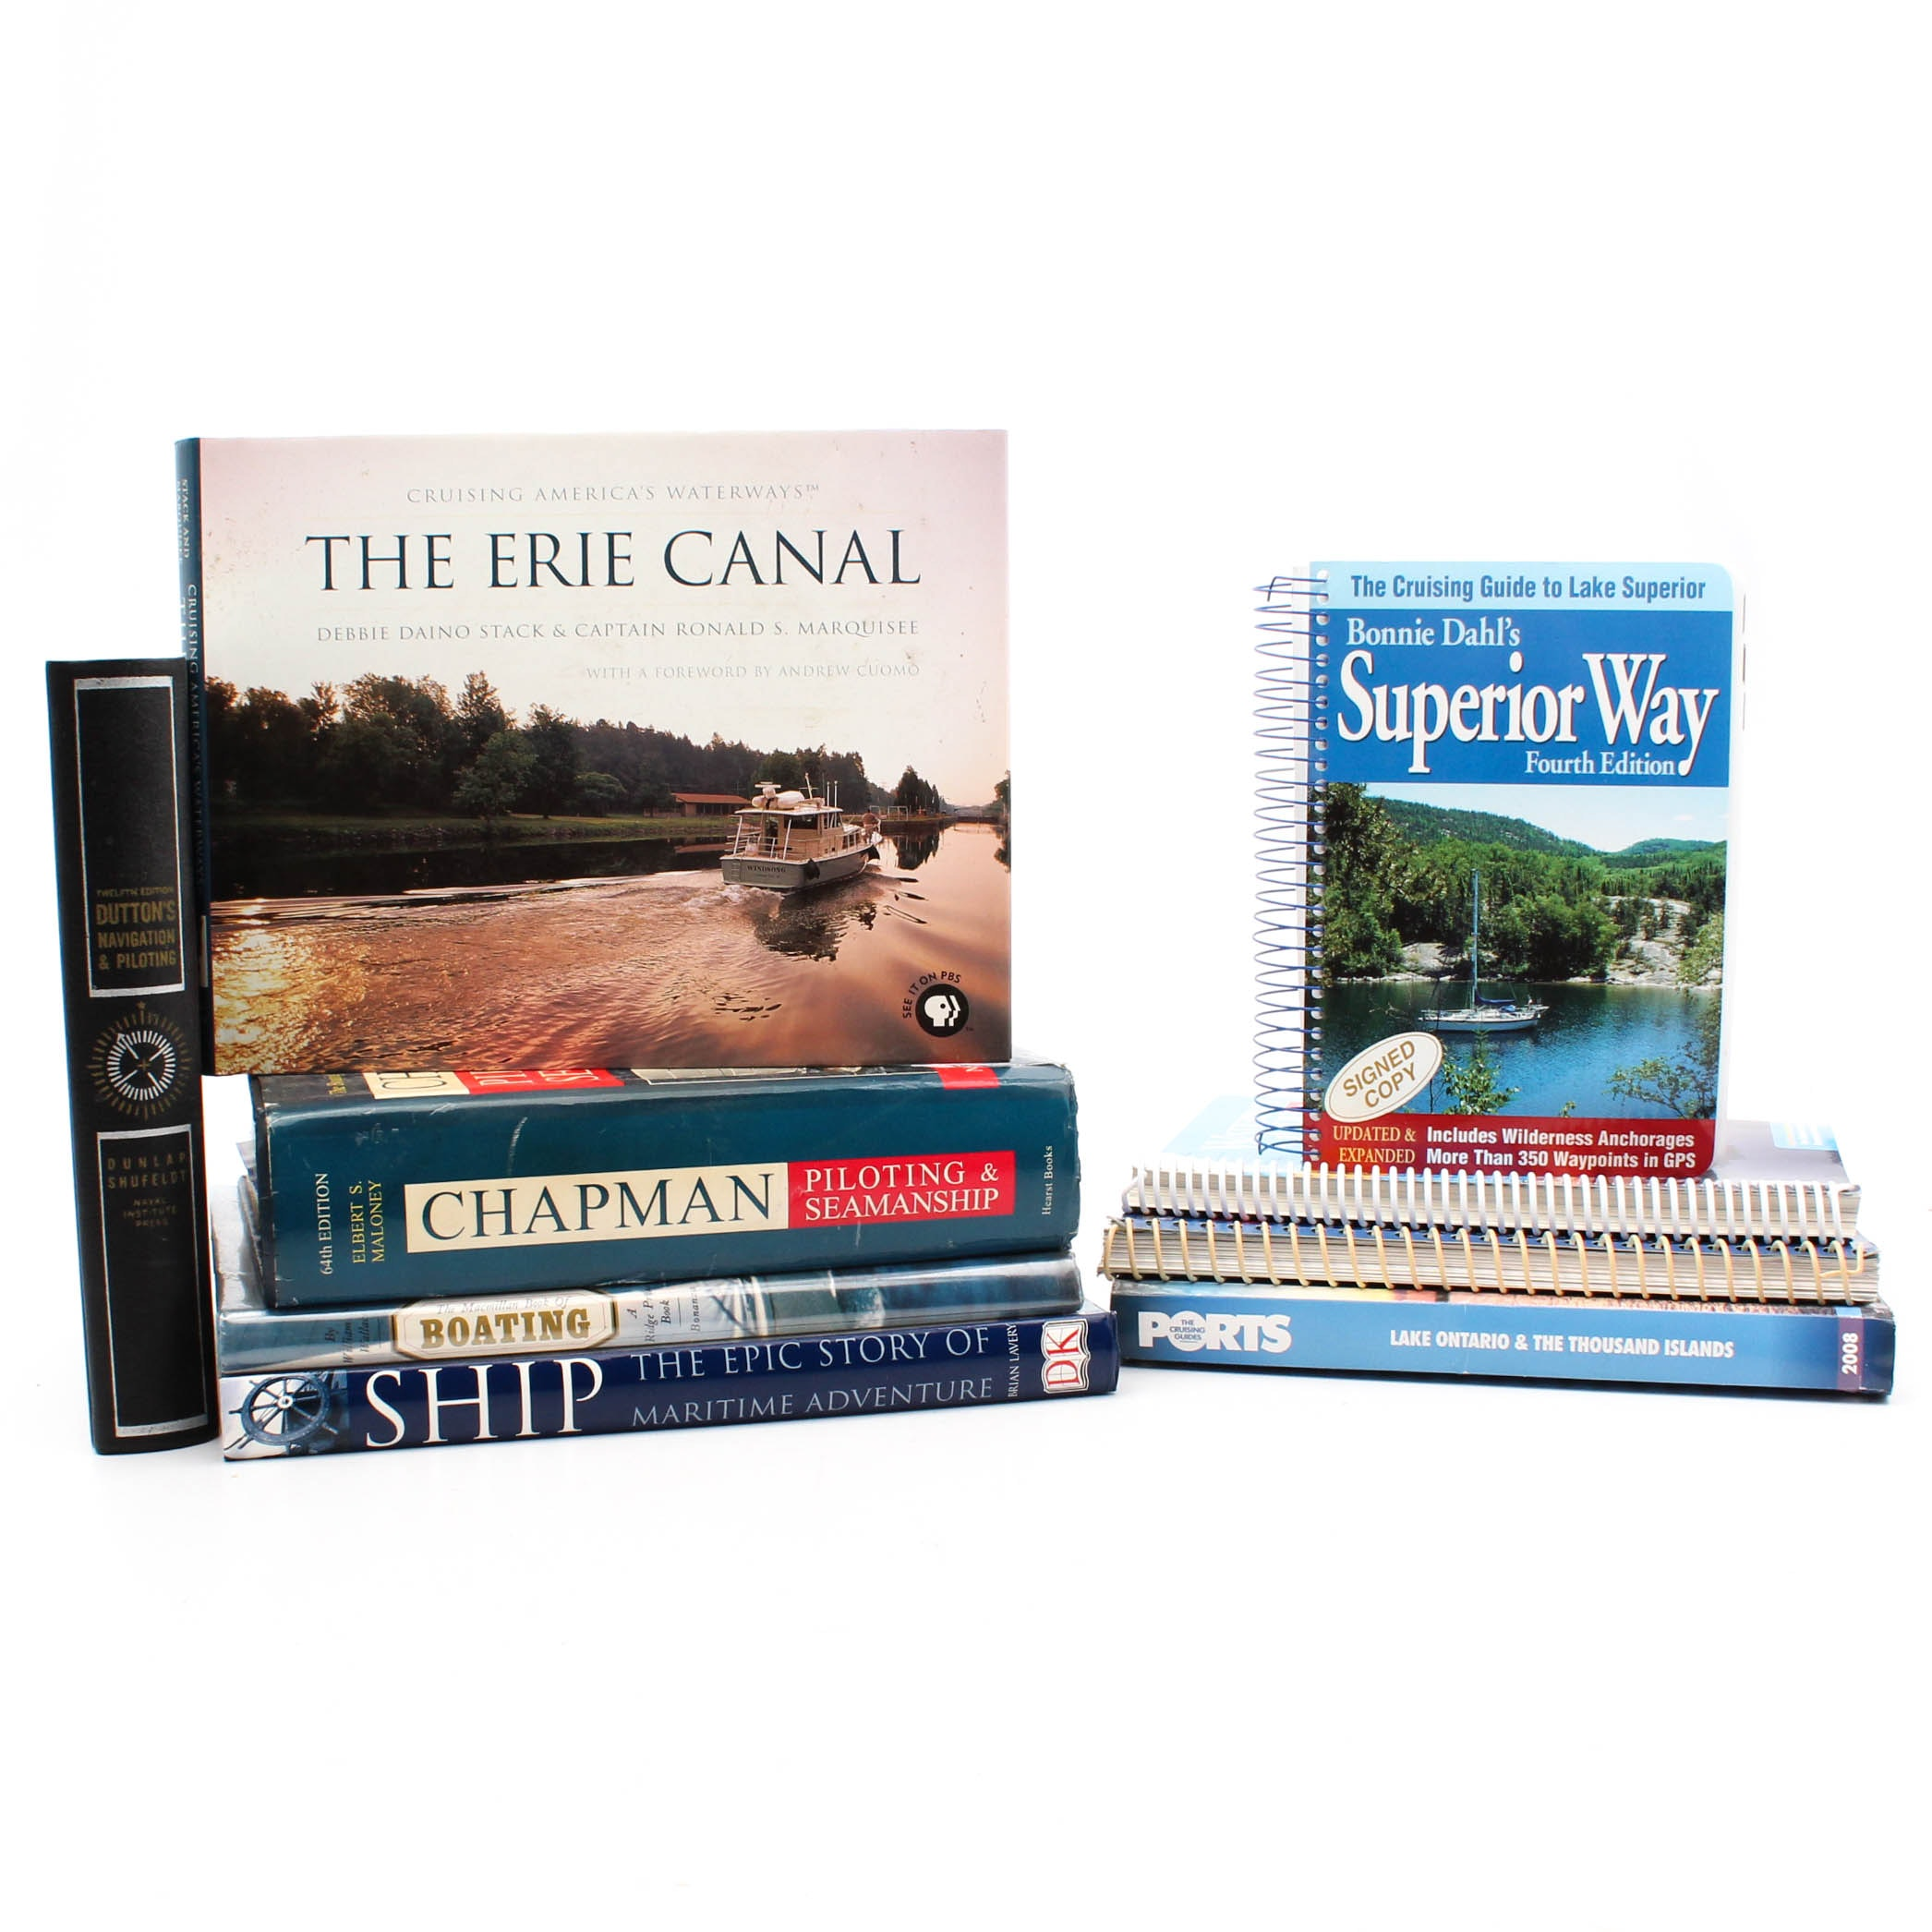 Boat History and Navigation Book Collection with Great Lakes Cruising Guides